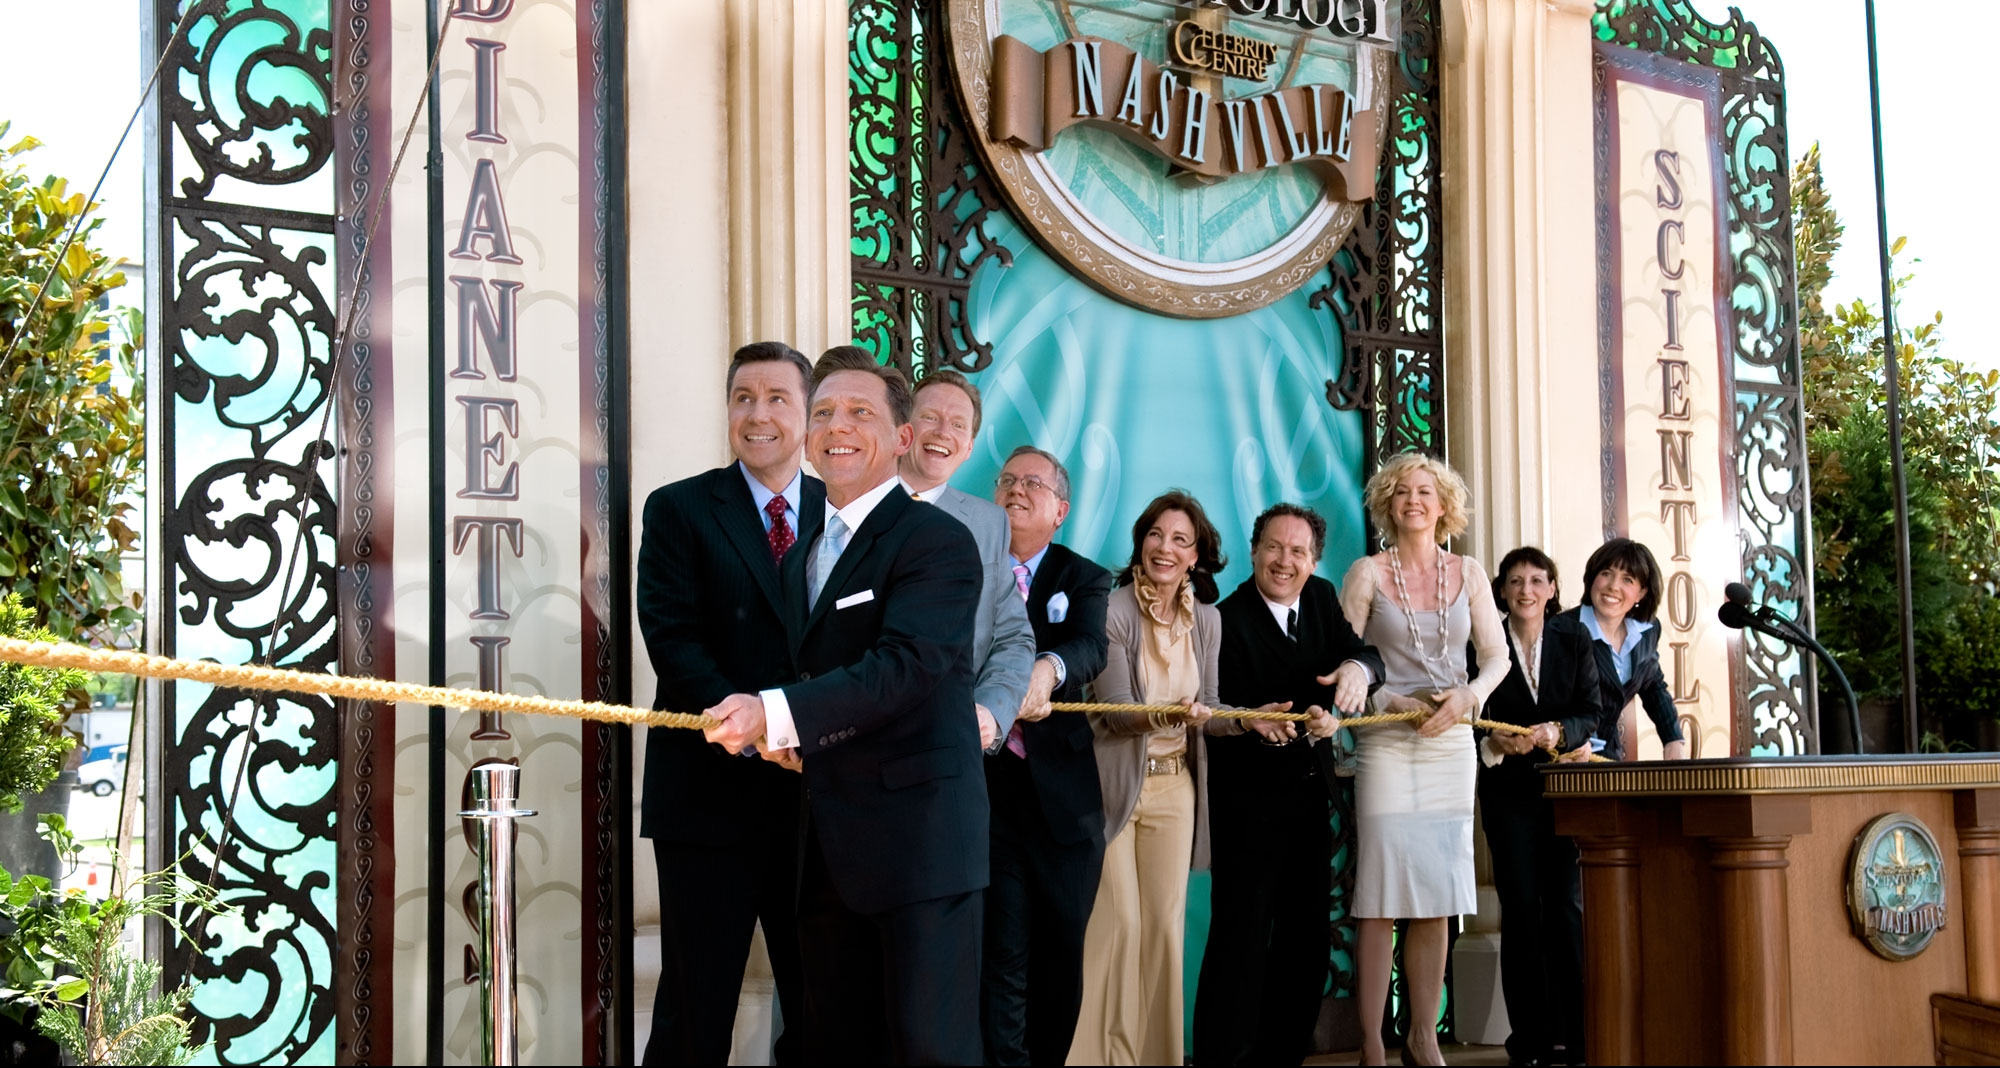 Church of Scientology Celebrity Center International in ...